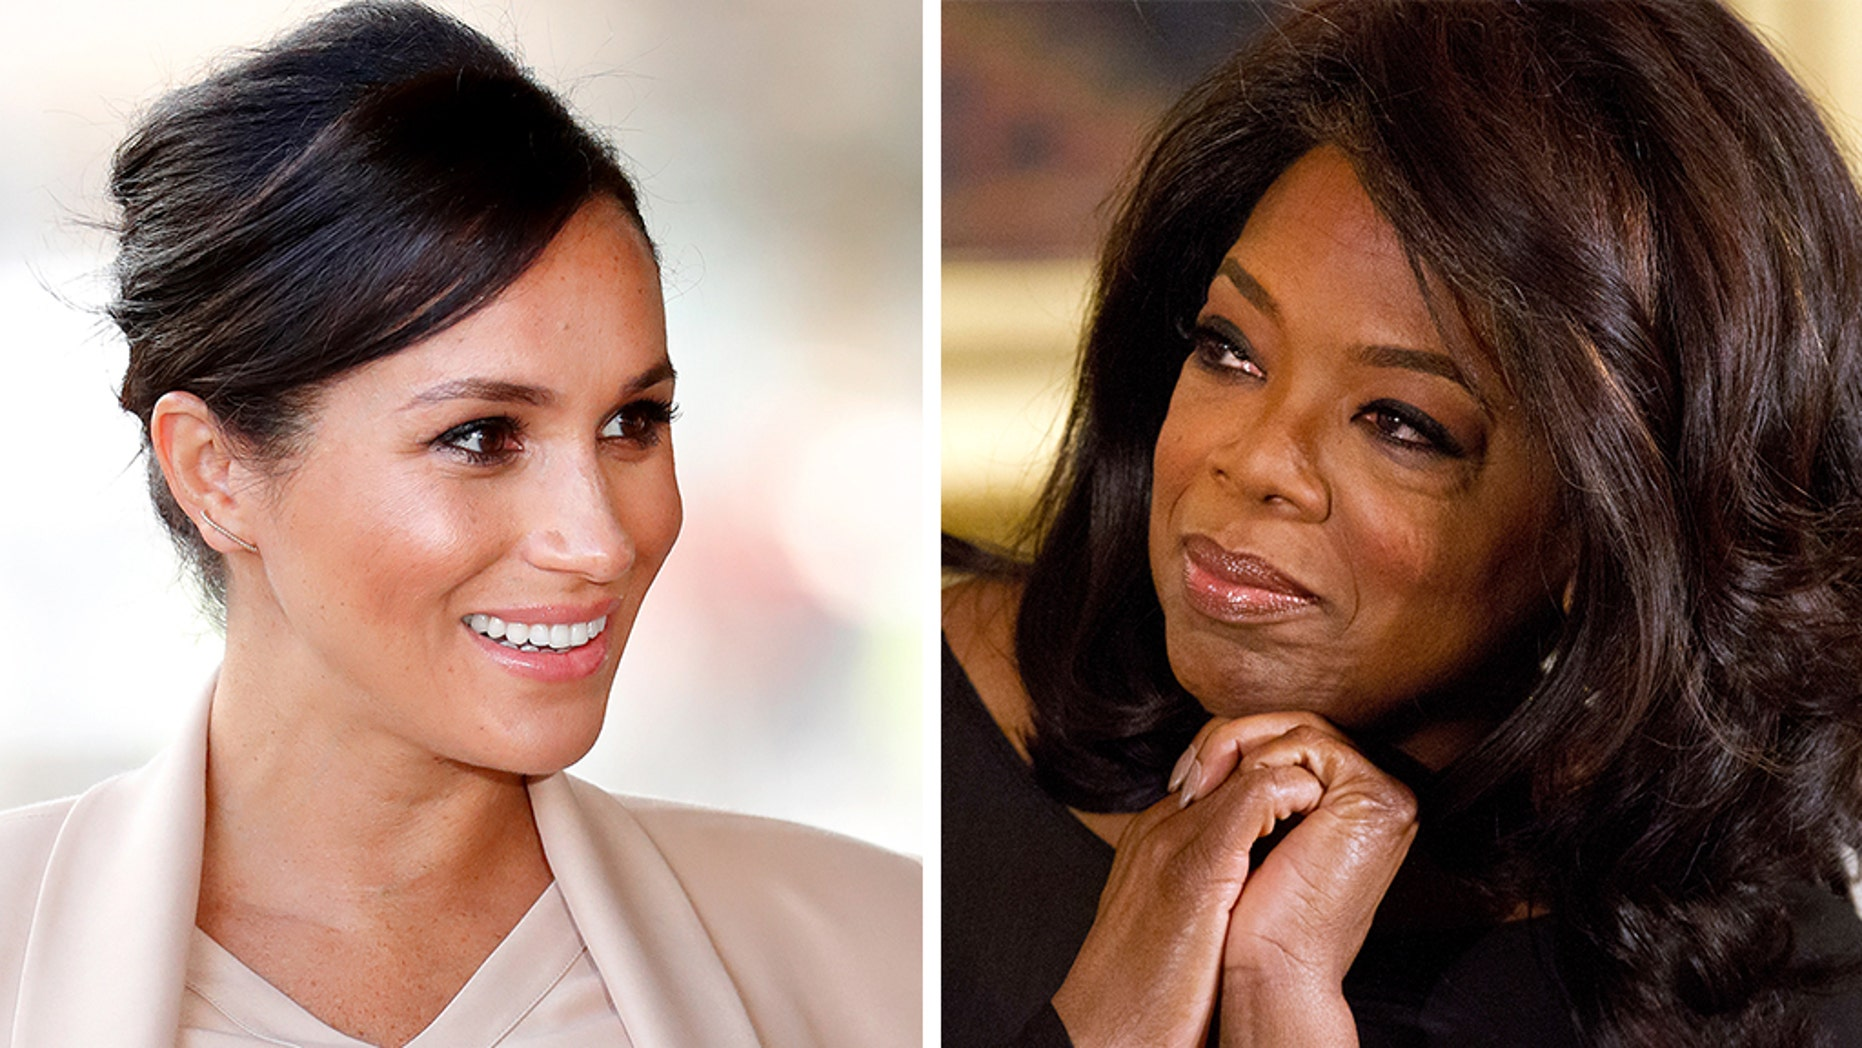 Oprah Winfrey, right, is defending Duchess of Sussex Meghan Markle and says the mom-to-be is 'being portrayed unfairly.'